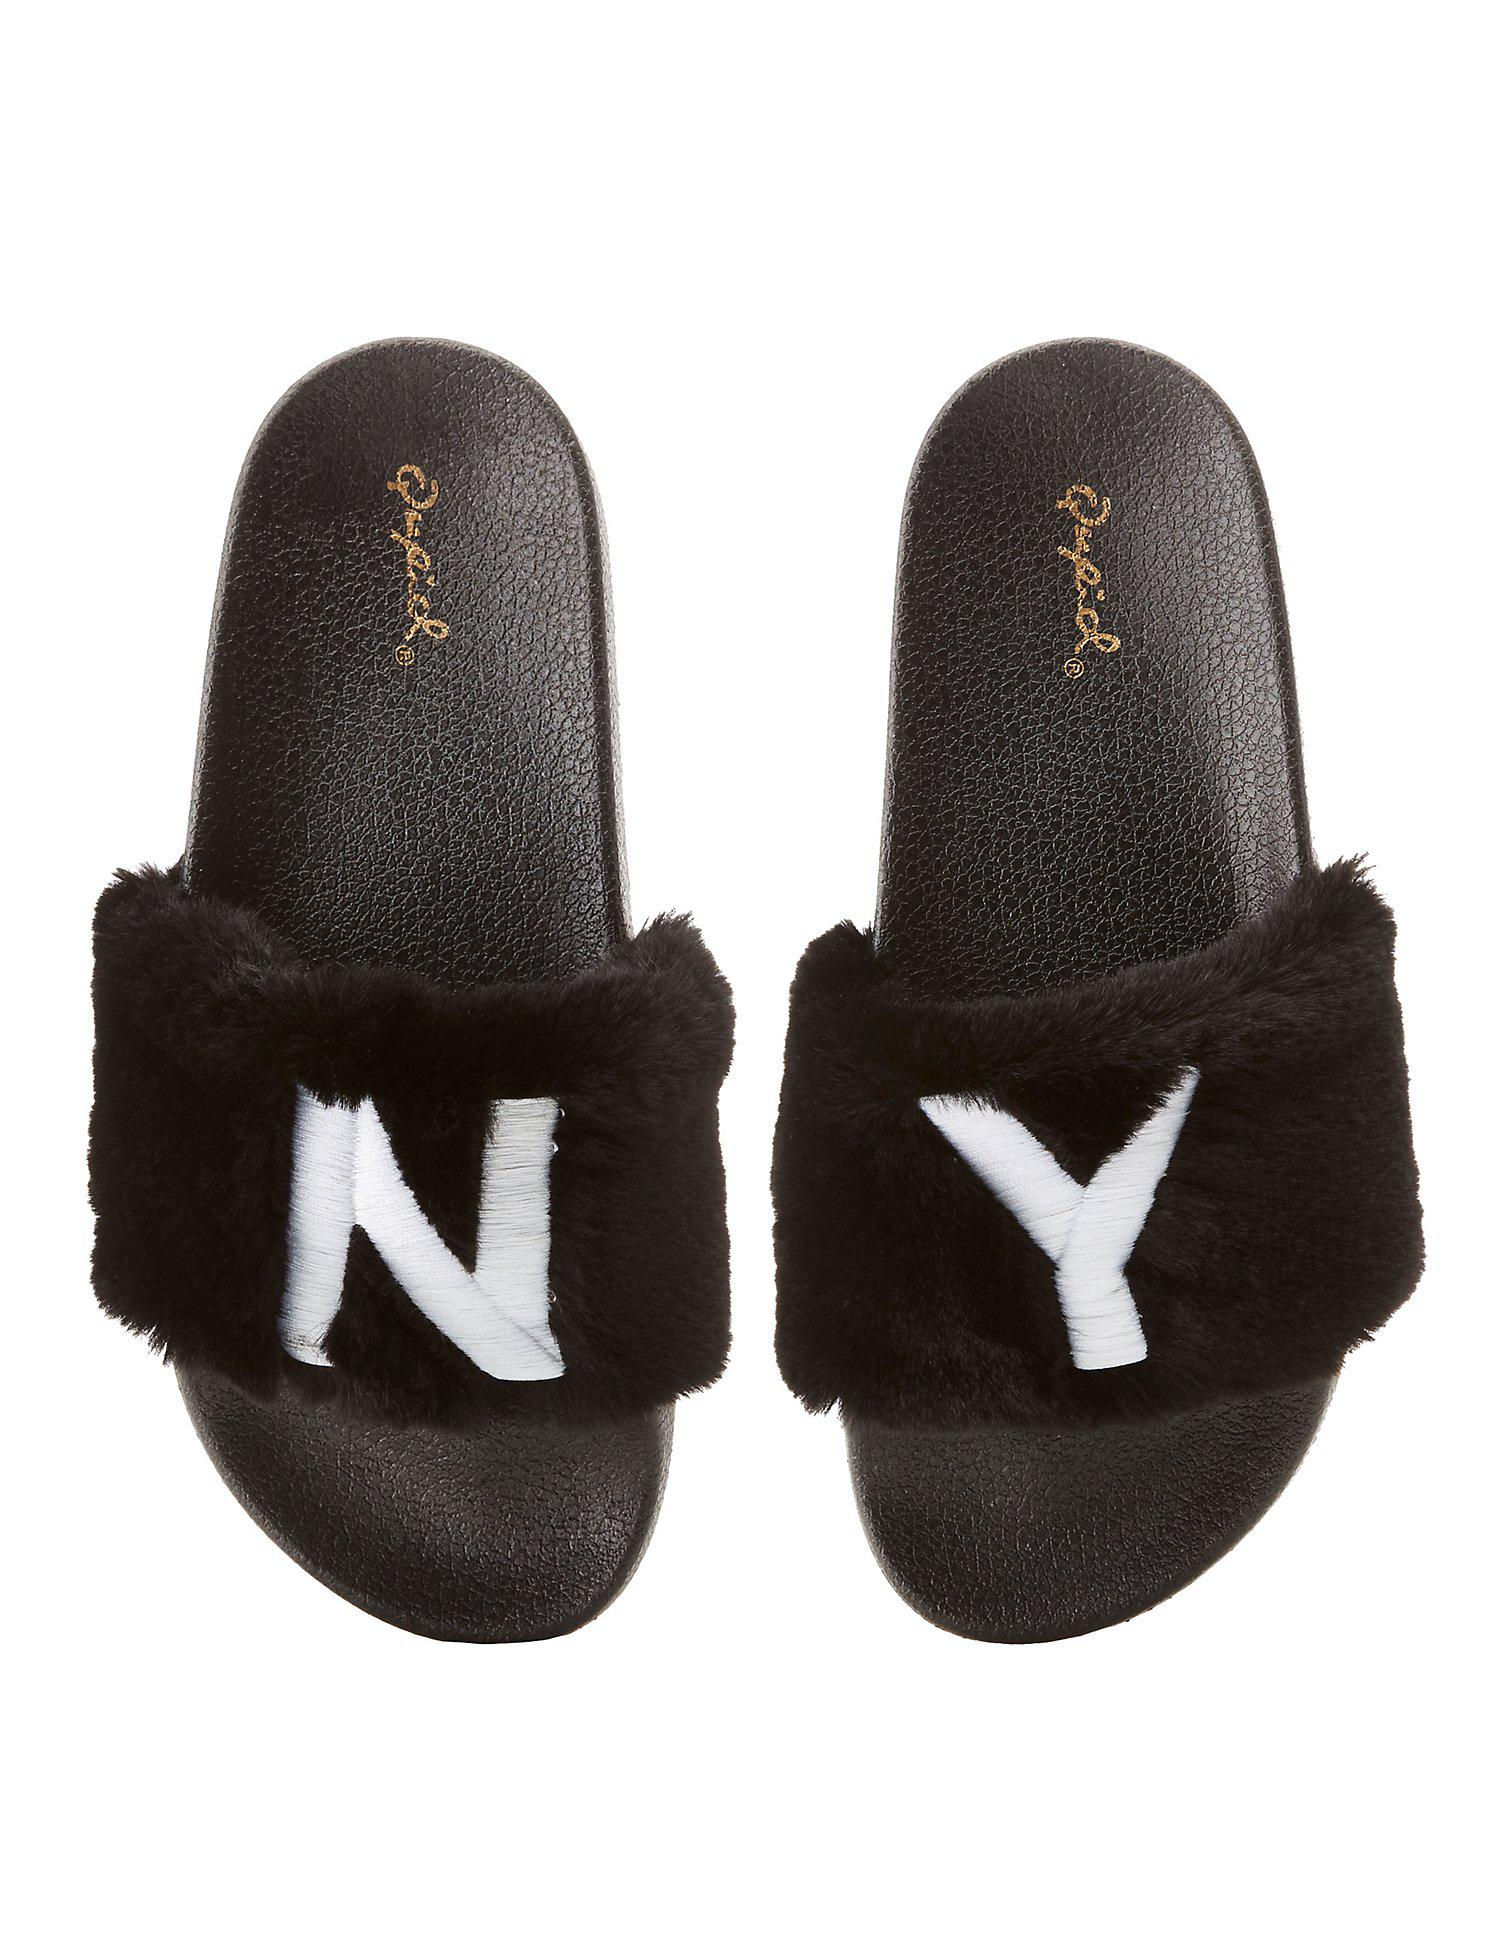 cfcfe2fb8a4 Lyst - Charlotte Russe Qupid Ny Faux Fur Slide Sandals in Black